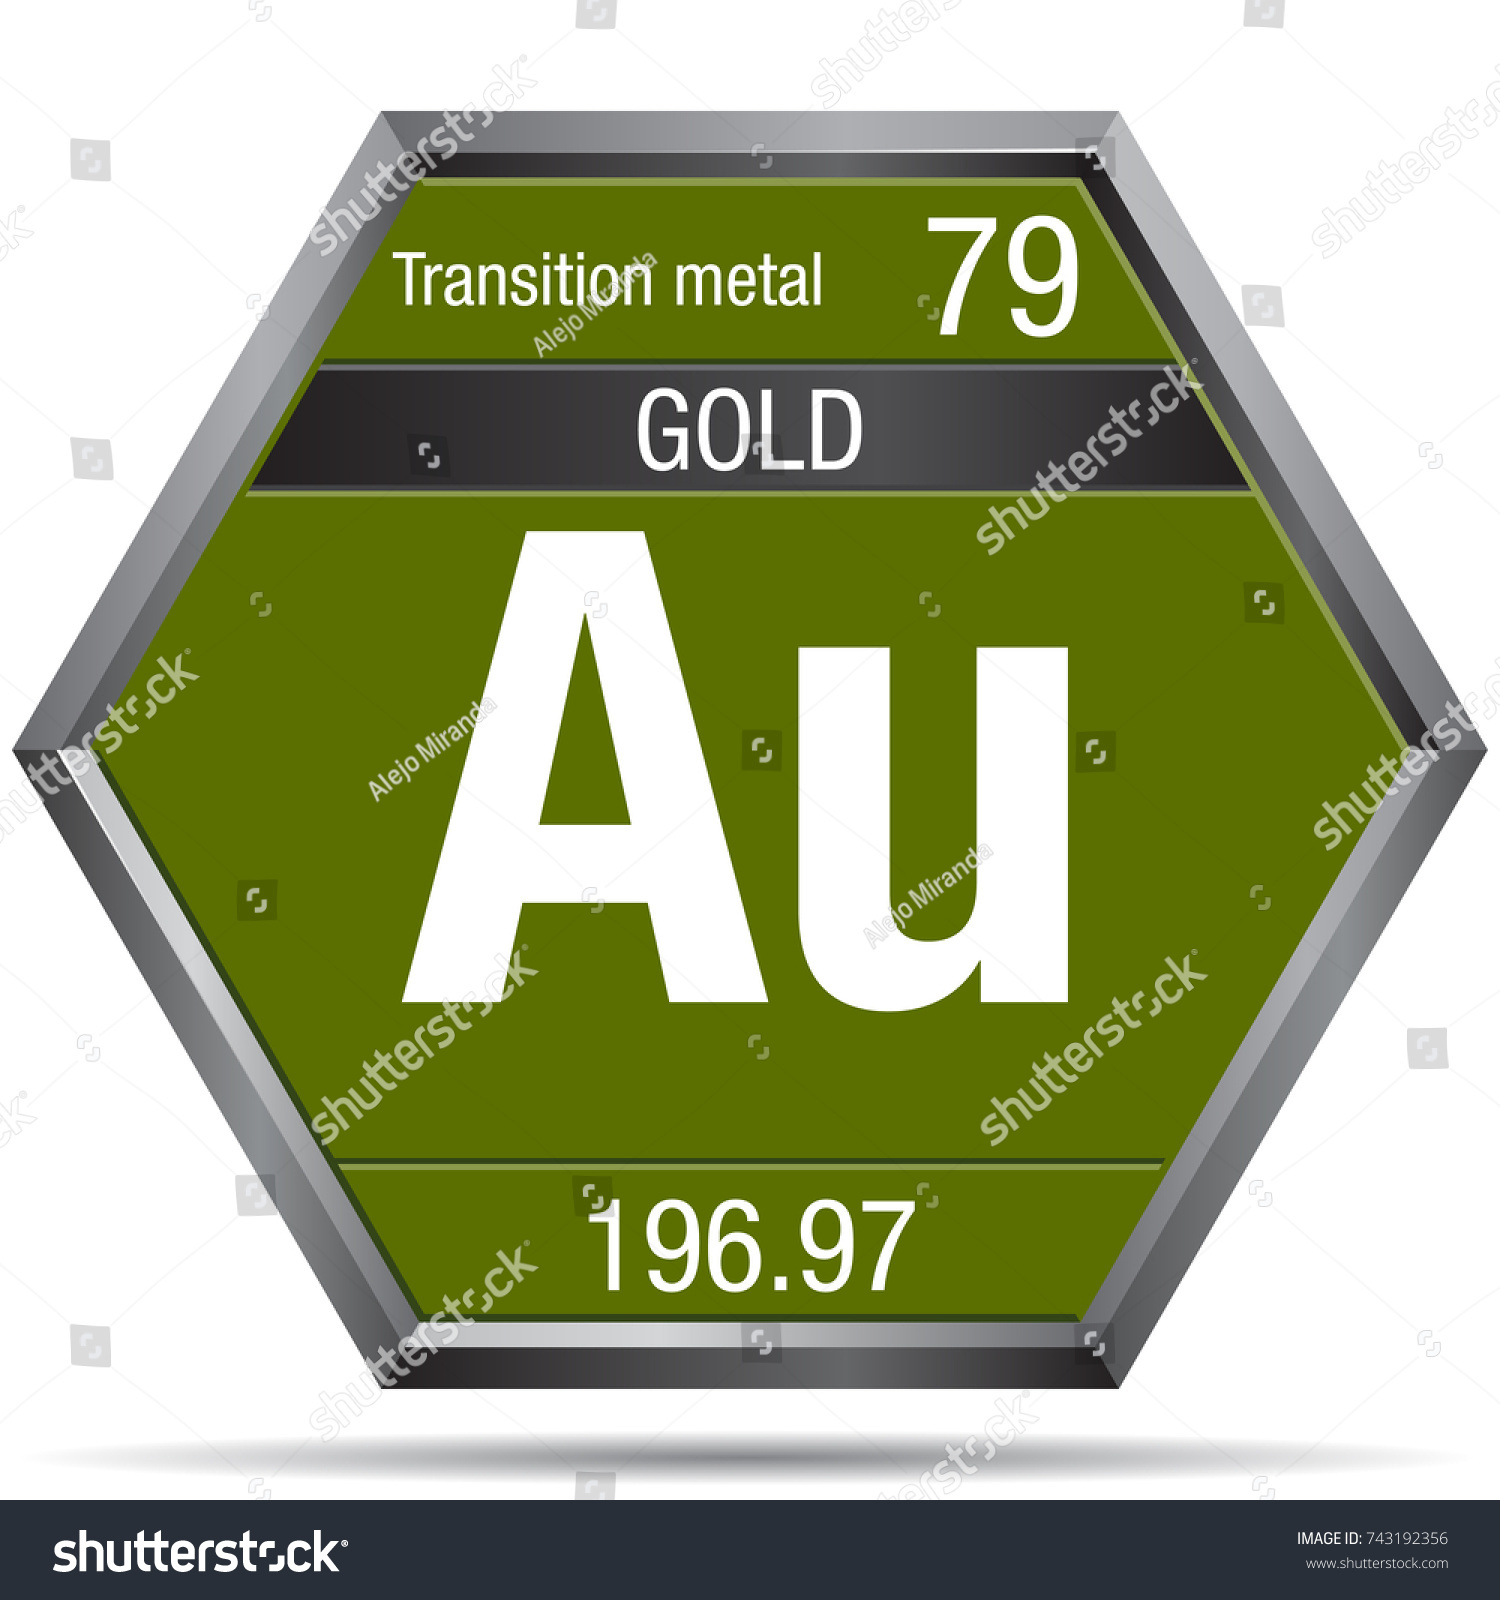 Periodic table symbol for gold choice image periodic table images chemical symbol for gold on periodic table gallery periodic chemical symbol for gold on periodic table gamestrikefo Gallery